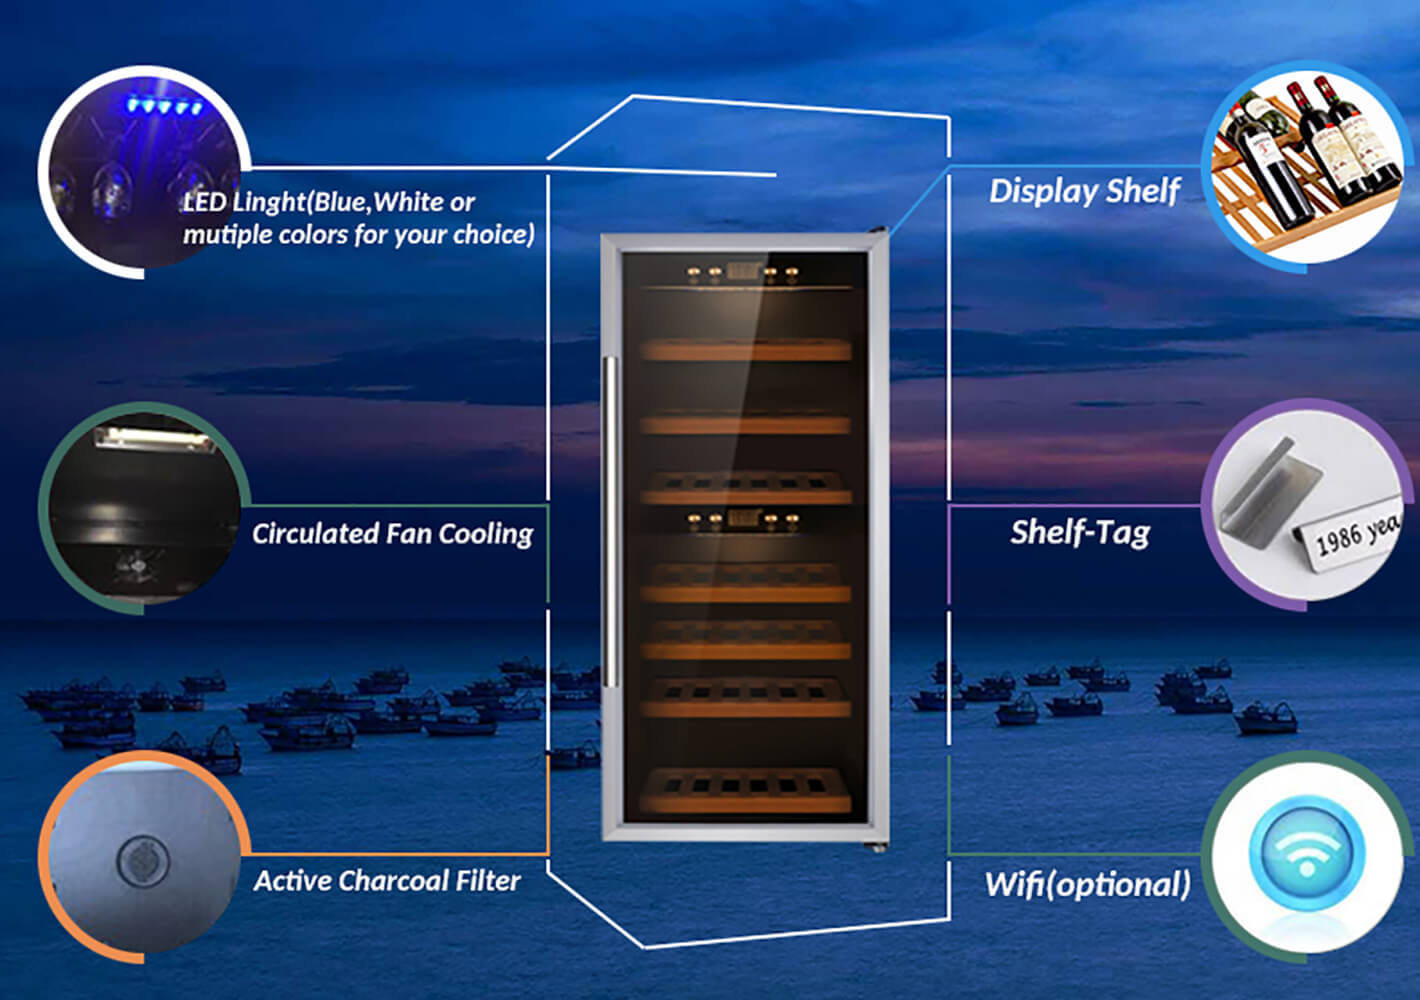 single single zone wine refrigerator shelves product for home-2